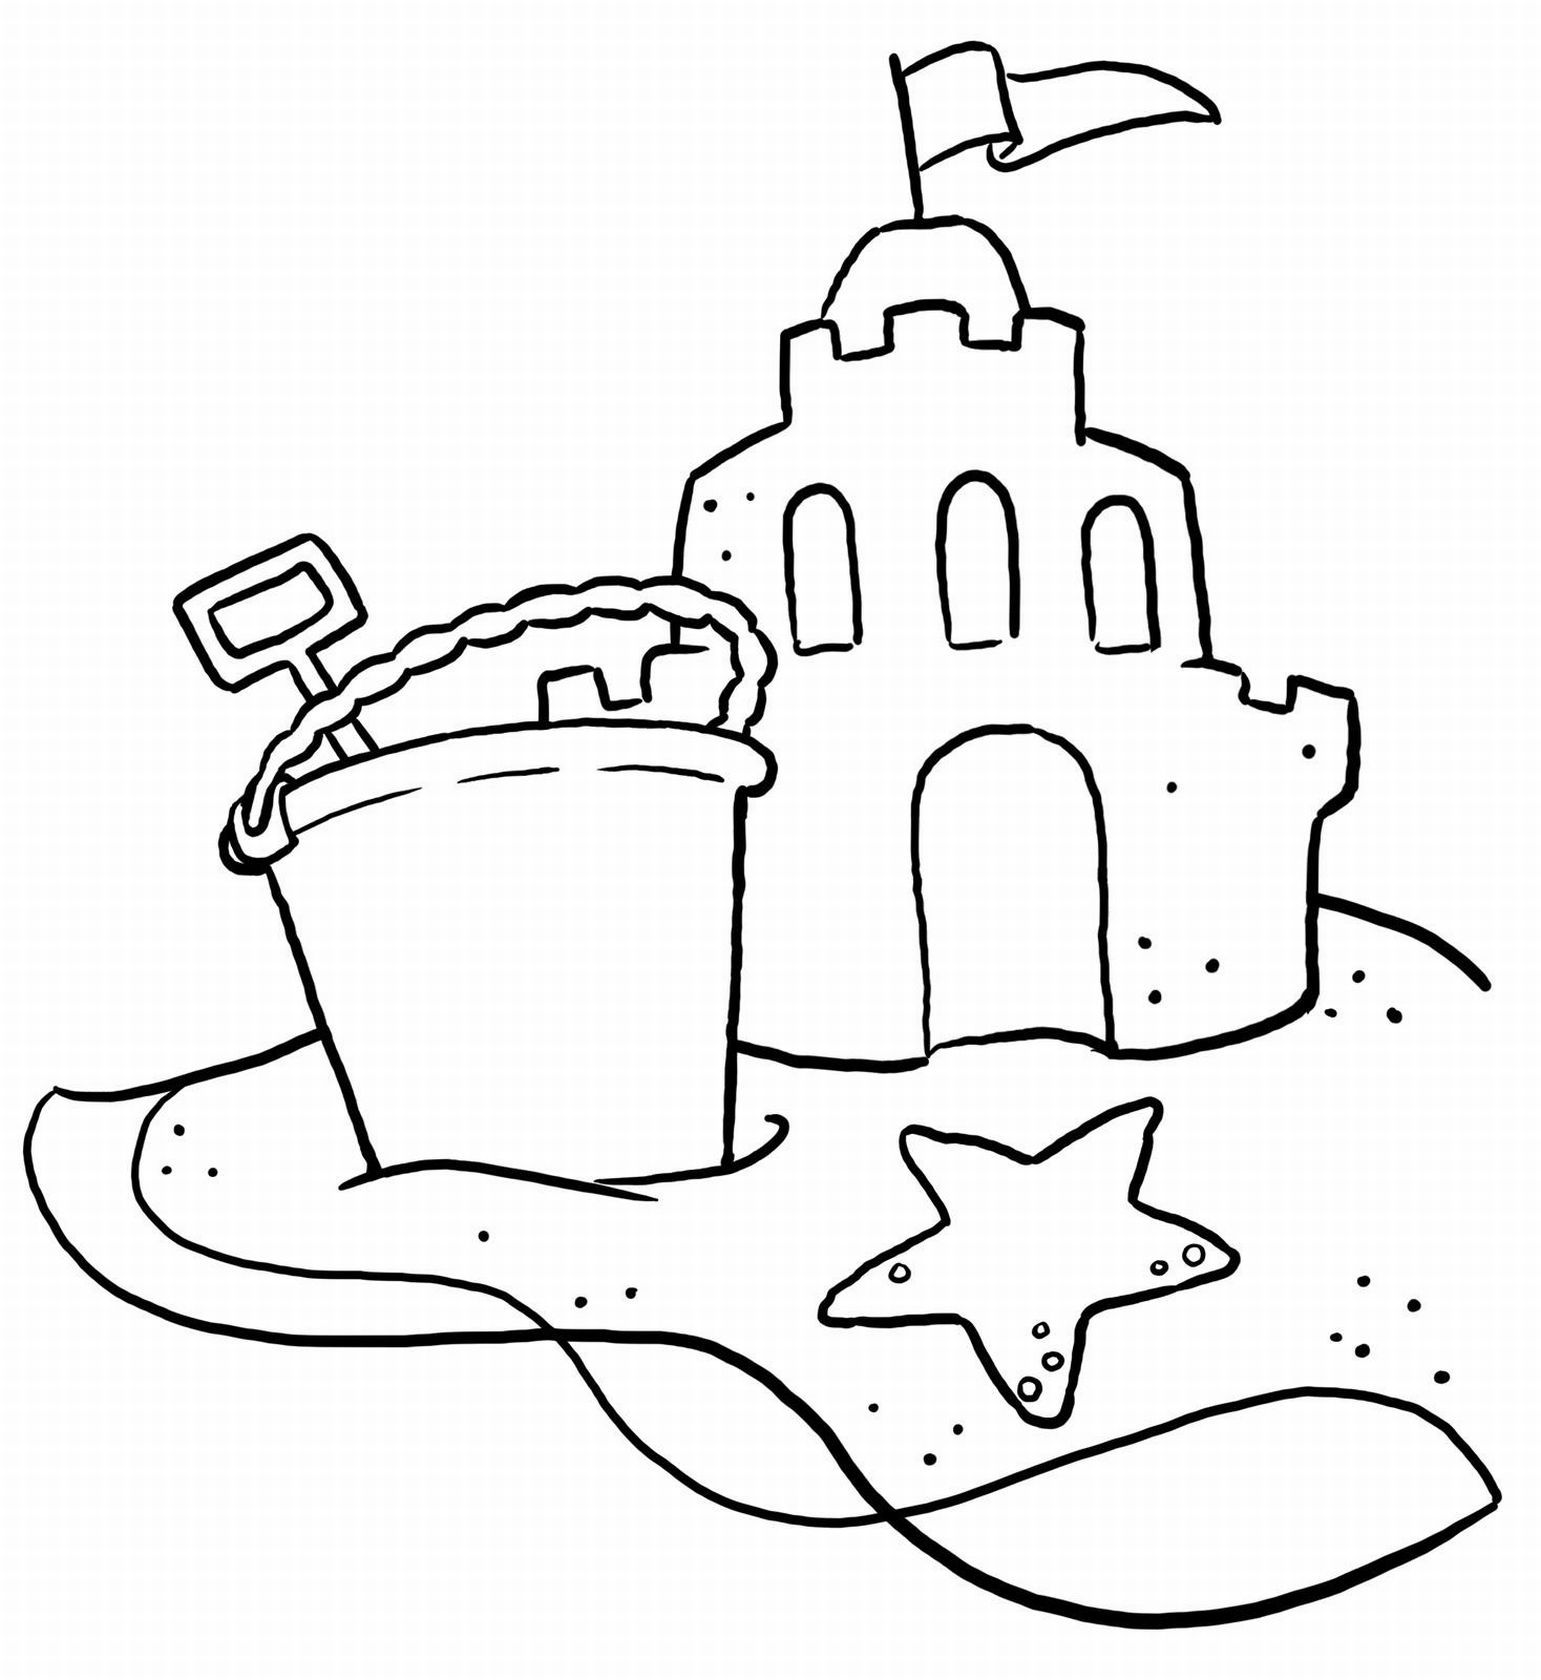 Beach Coloring Pages : 20 Free Printable Sheets to Color ...